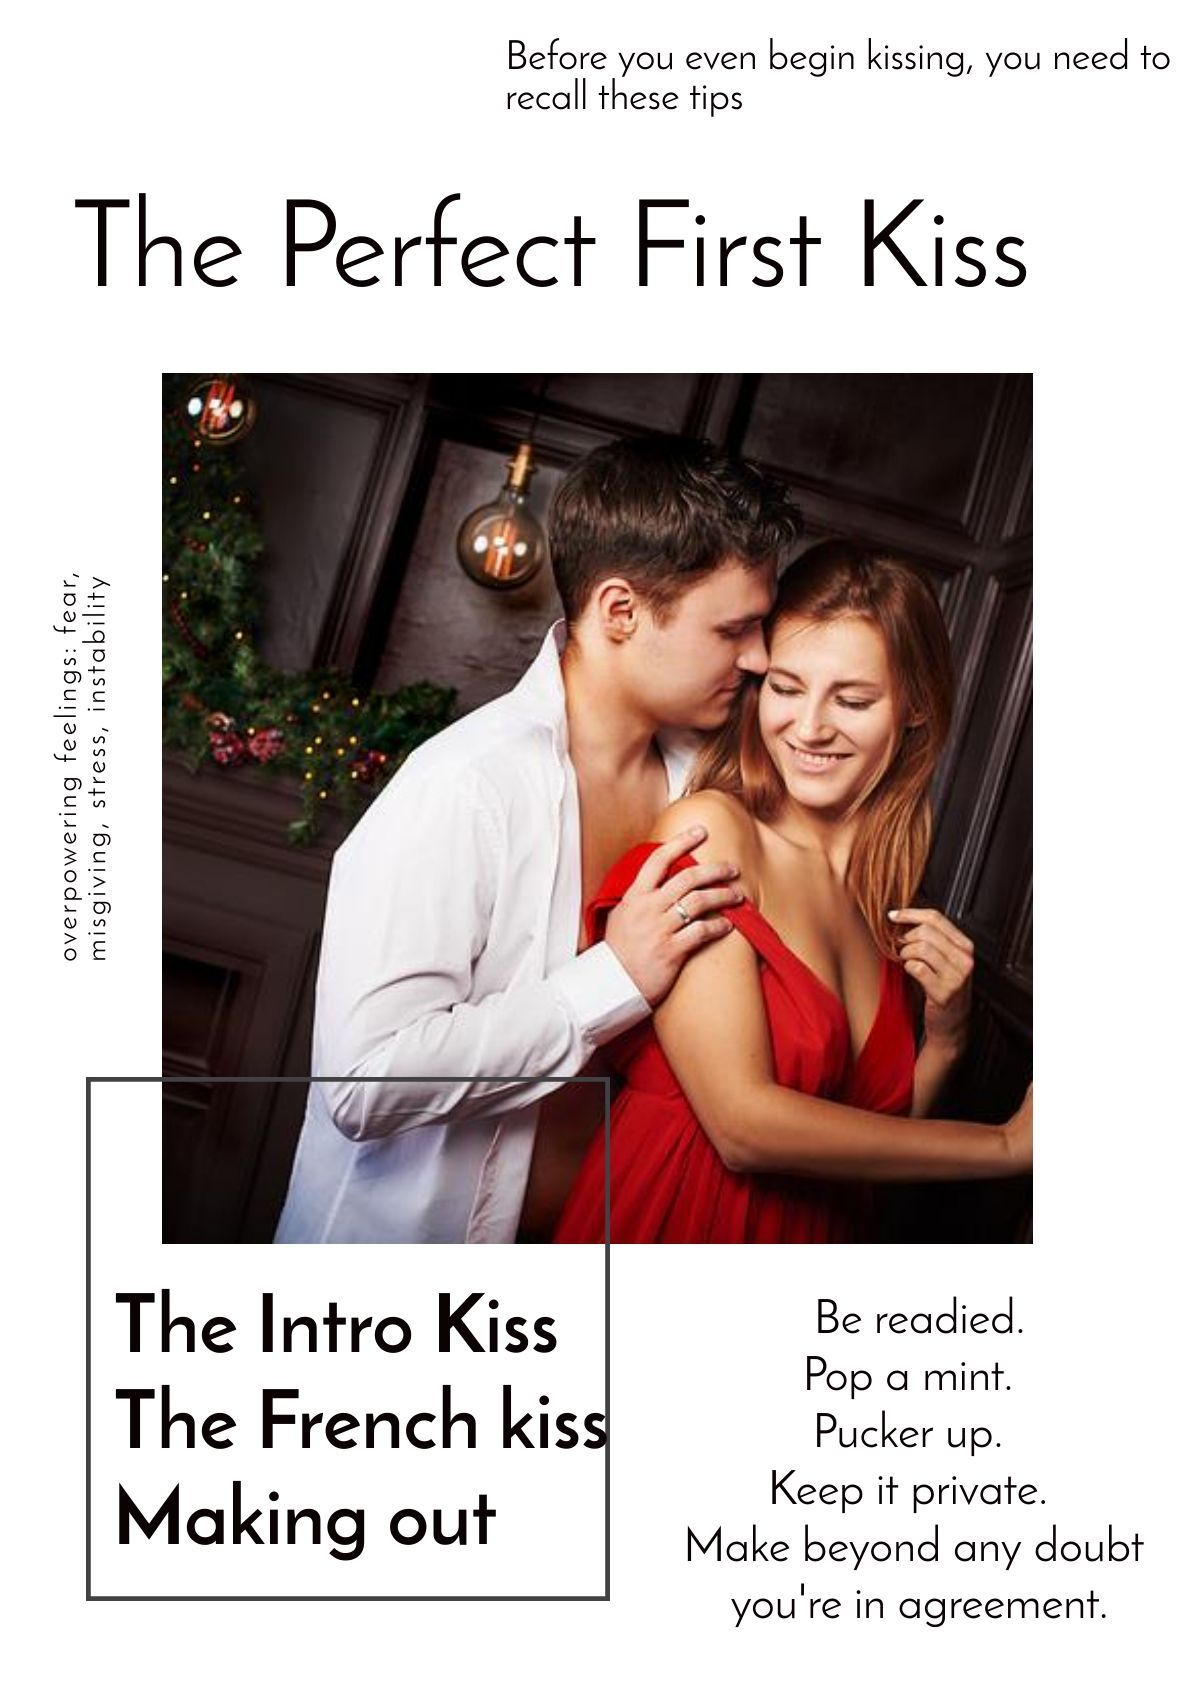 How to make the first kiss perfect